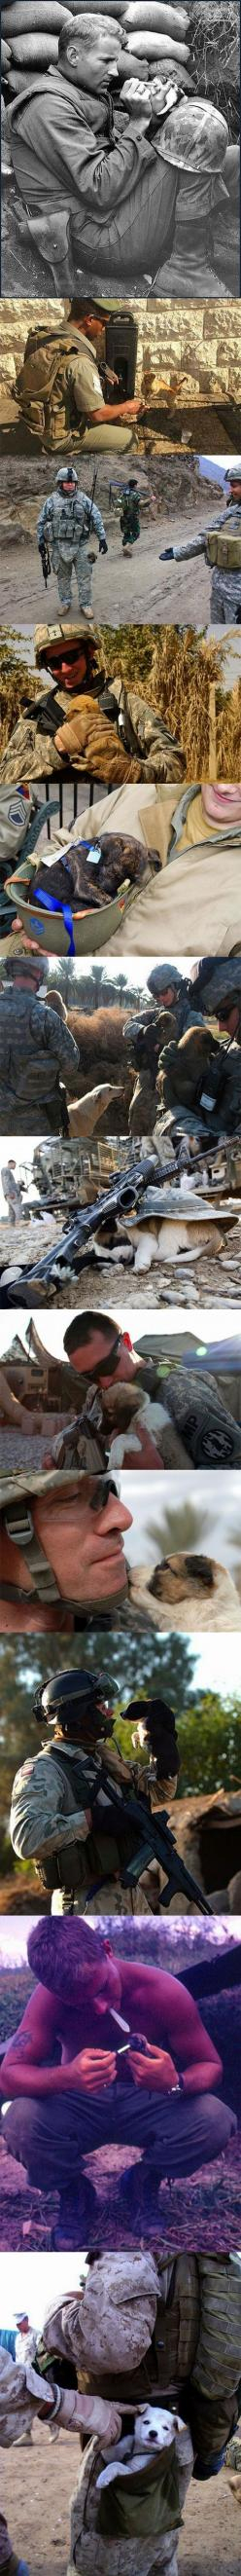 The most adorable...: Hero, Soldiers, Best Friends, Real Men, Dog, Man, Animal